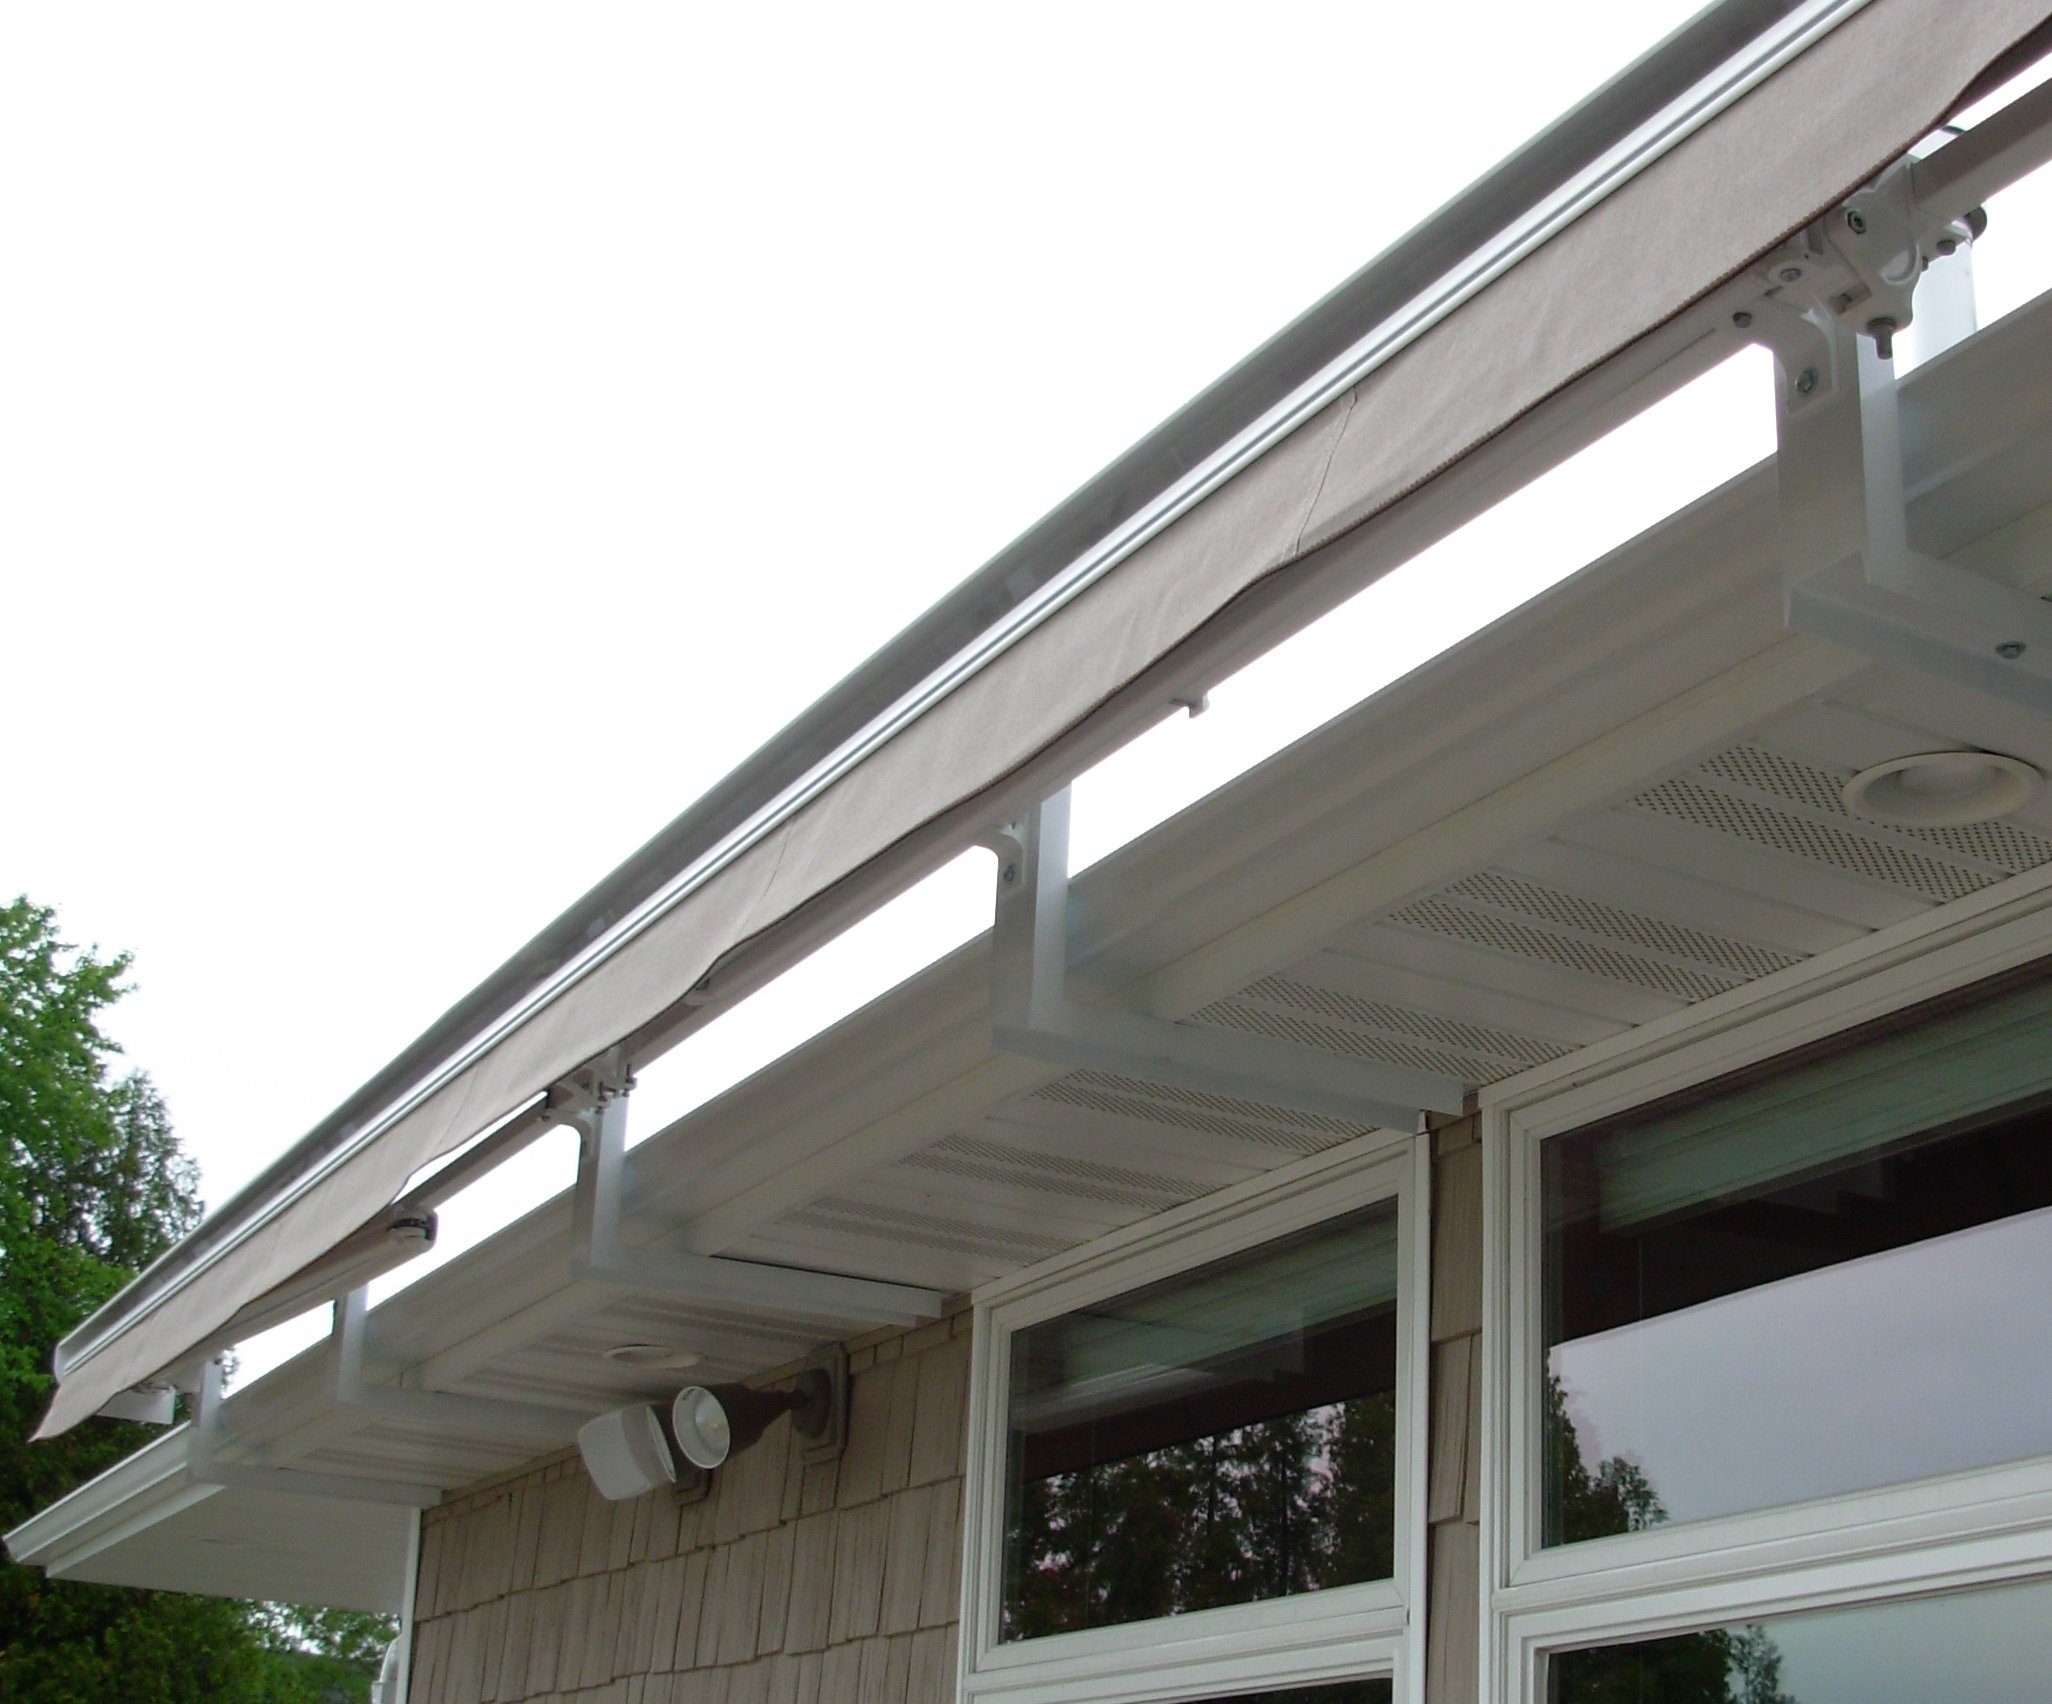 Retractable Awning Brackets 28 Images 16 Premium Retractable Awning Retractable Awnings